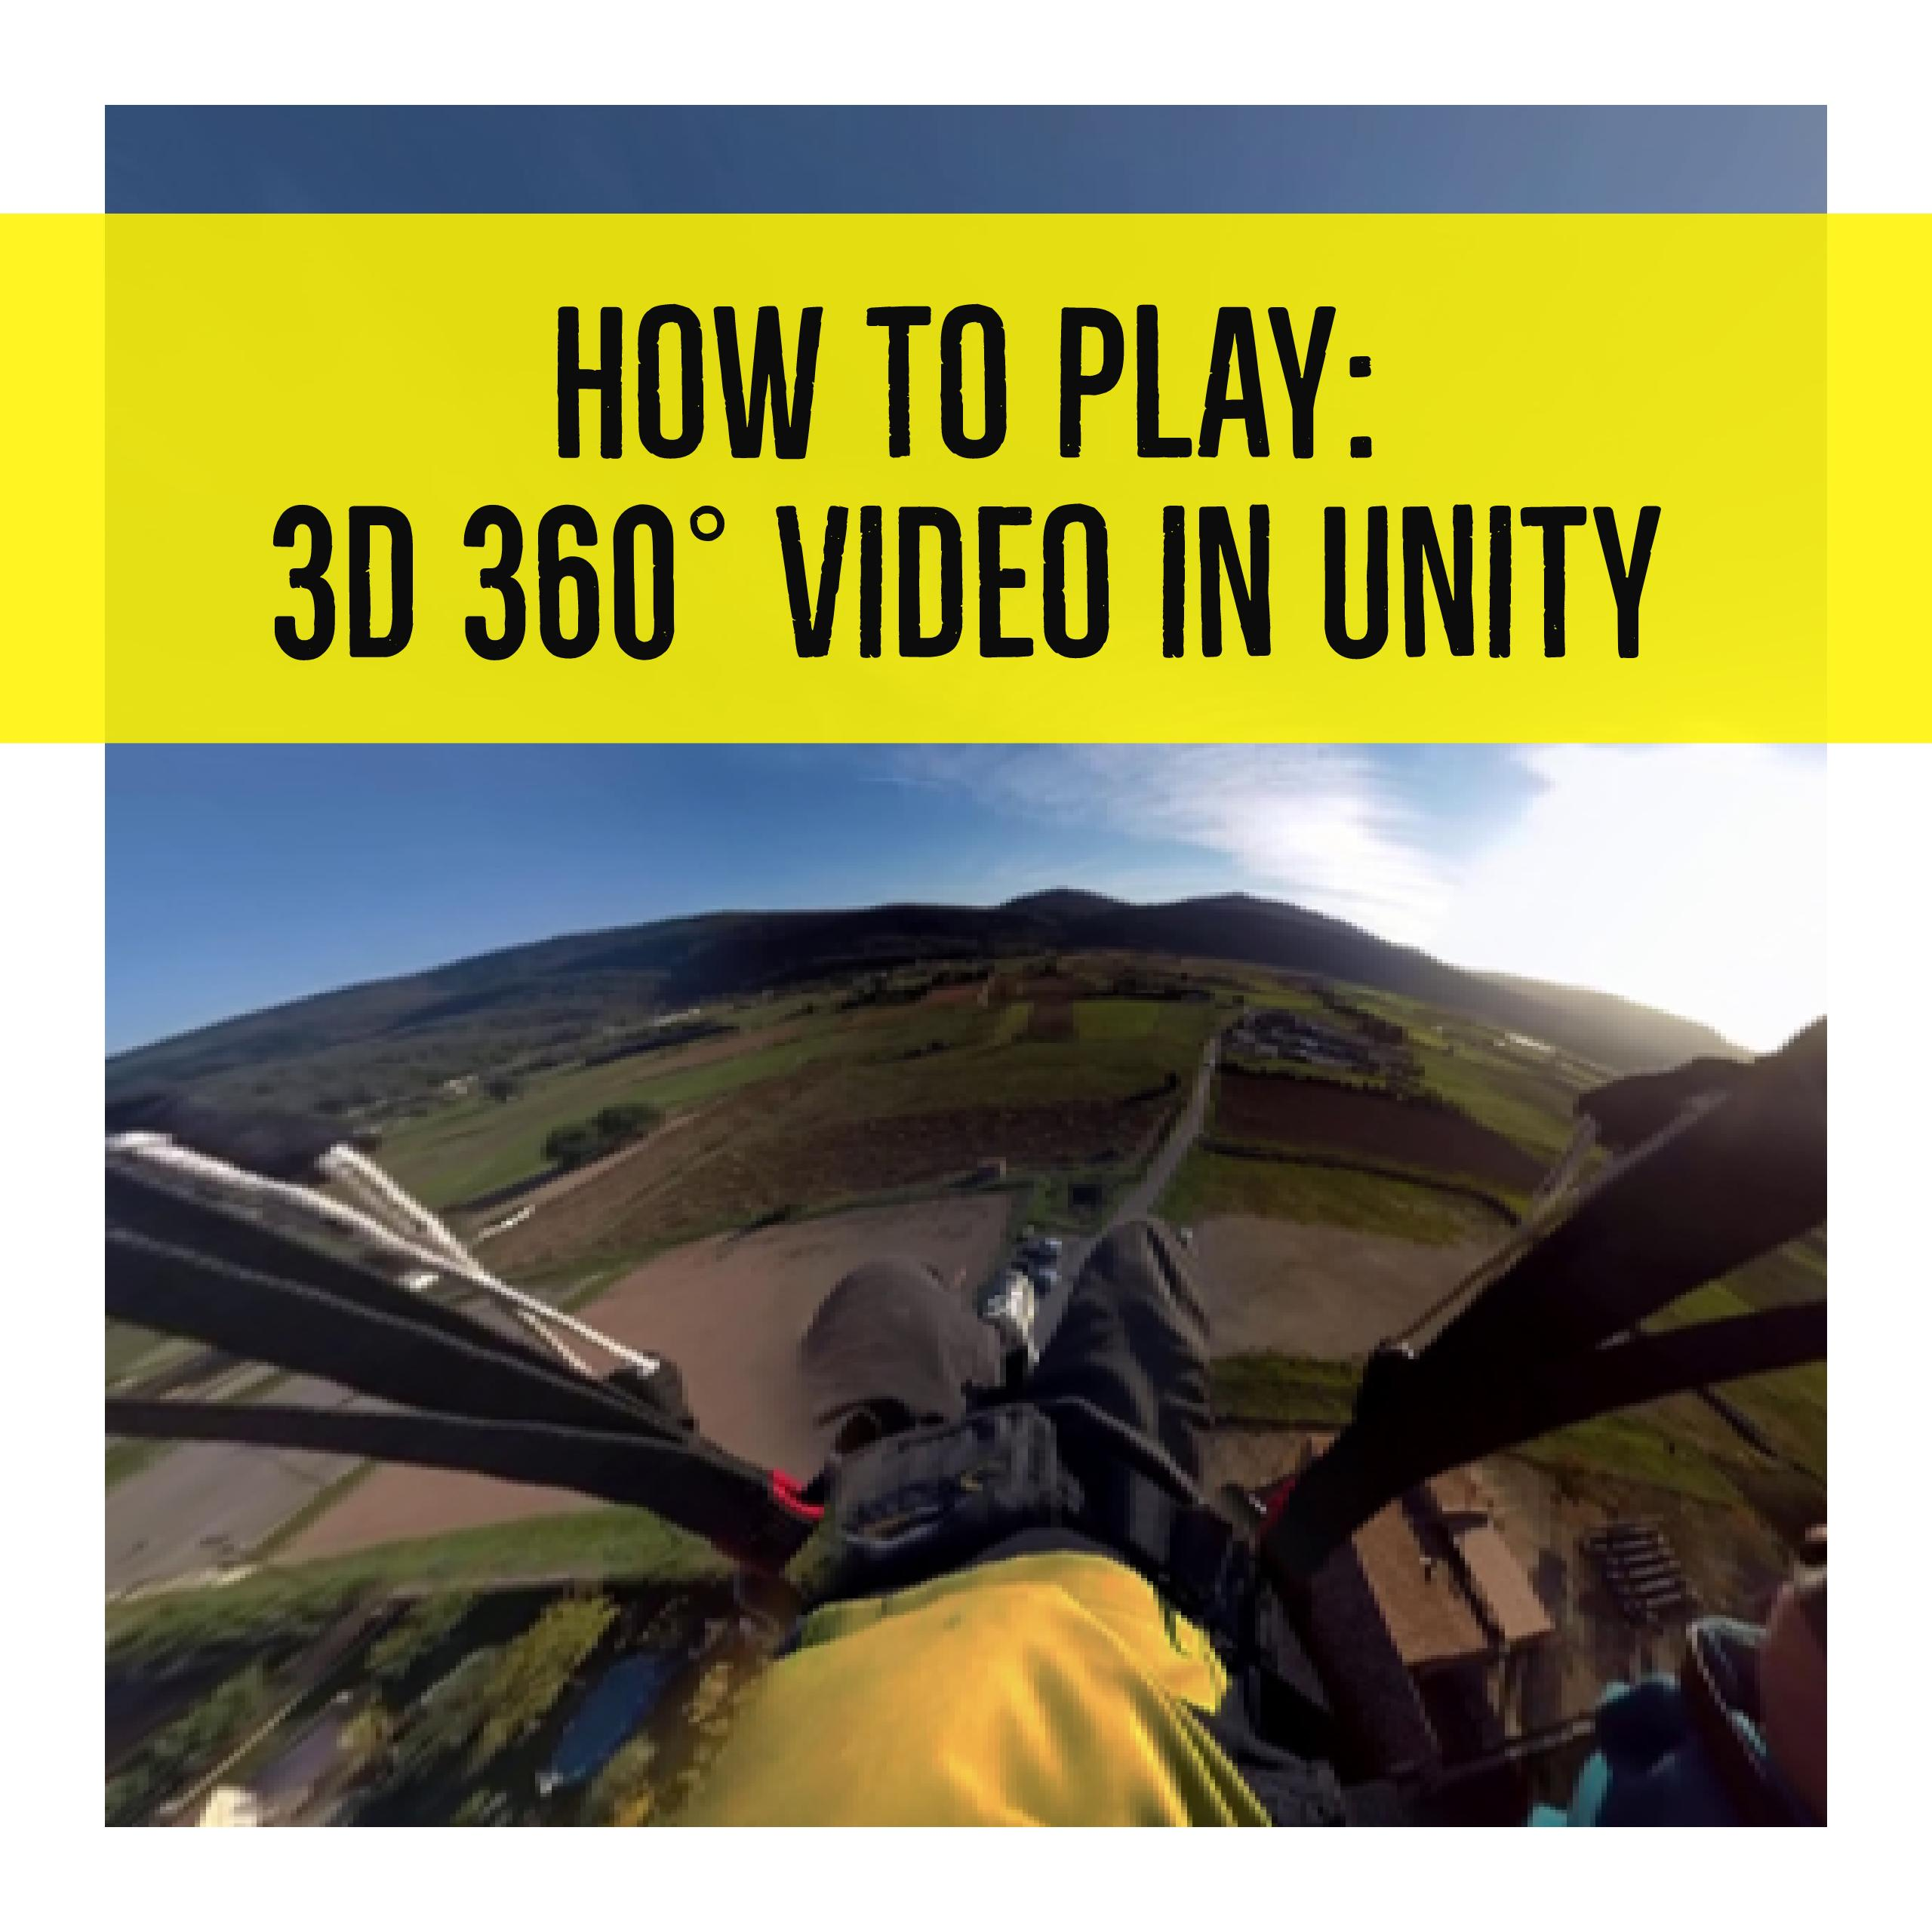 How to make 360 video in unity